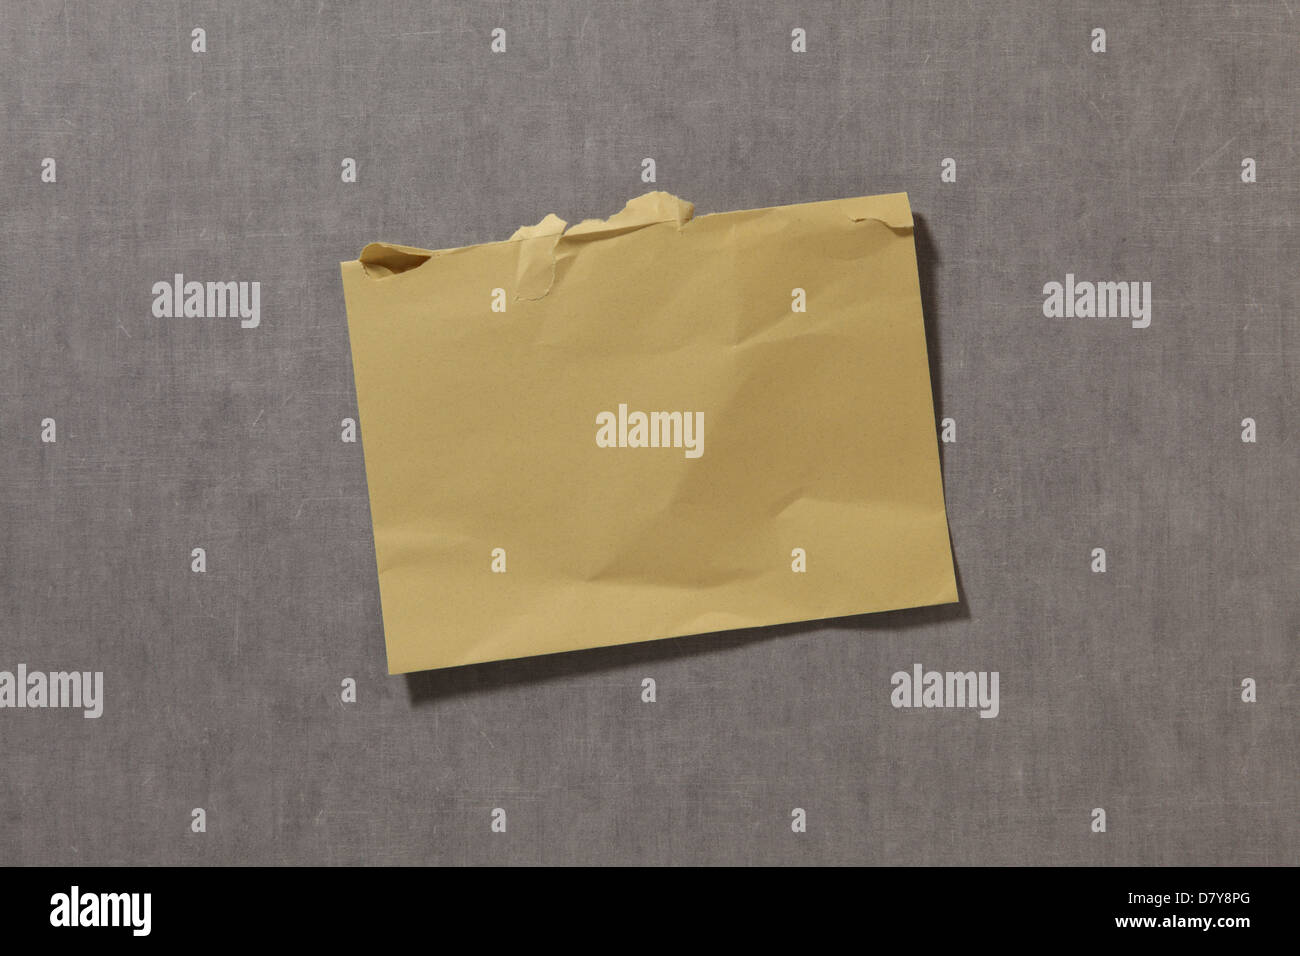 f44c94d4a An air mail envelope slightly worn and torn Stock Photo: 56533304 ...